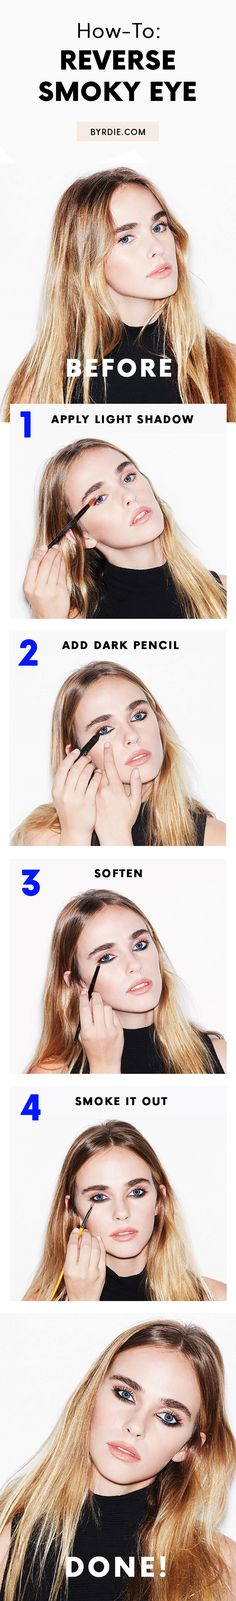 How to wear eye makeup during the daytime